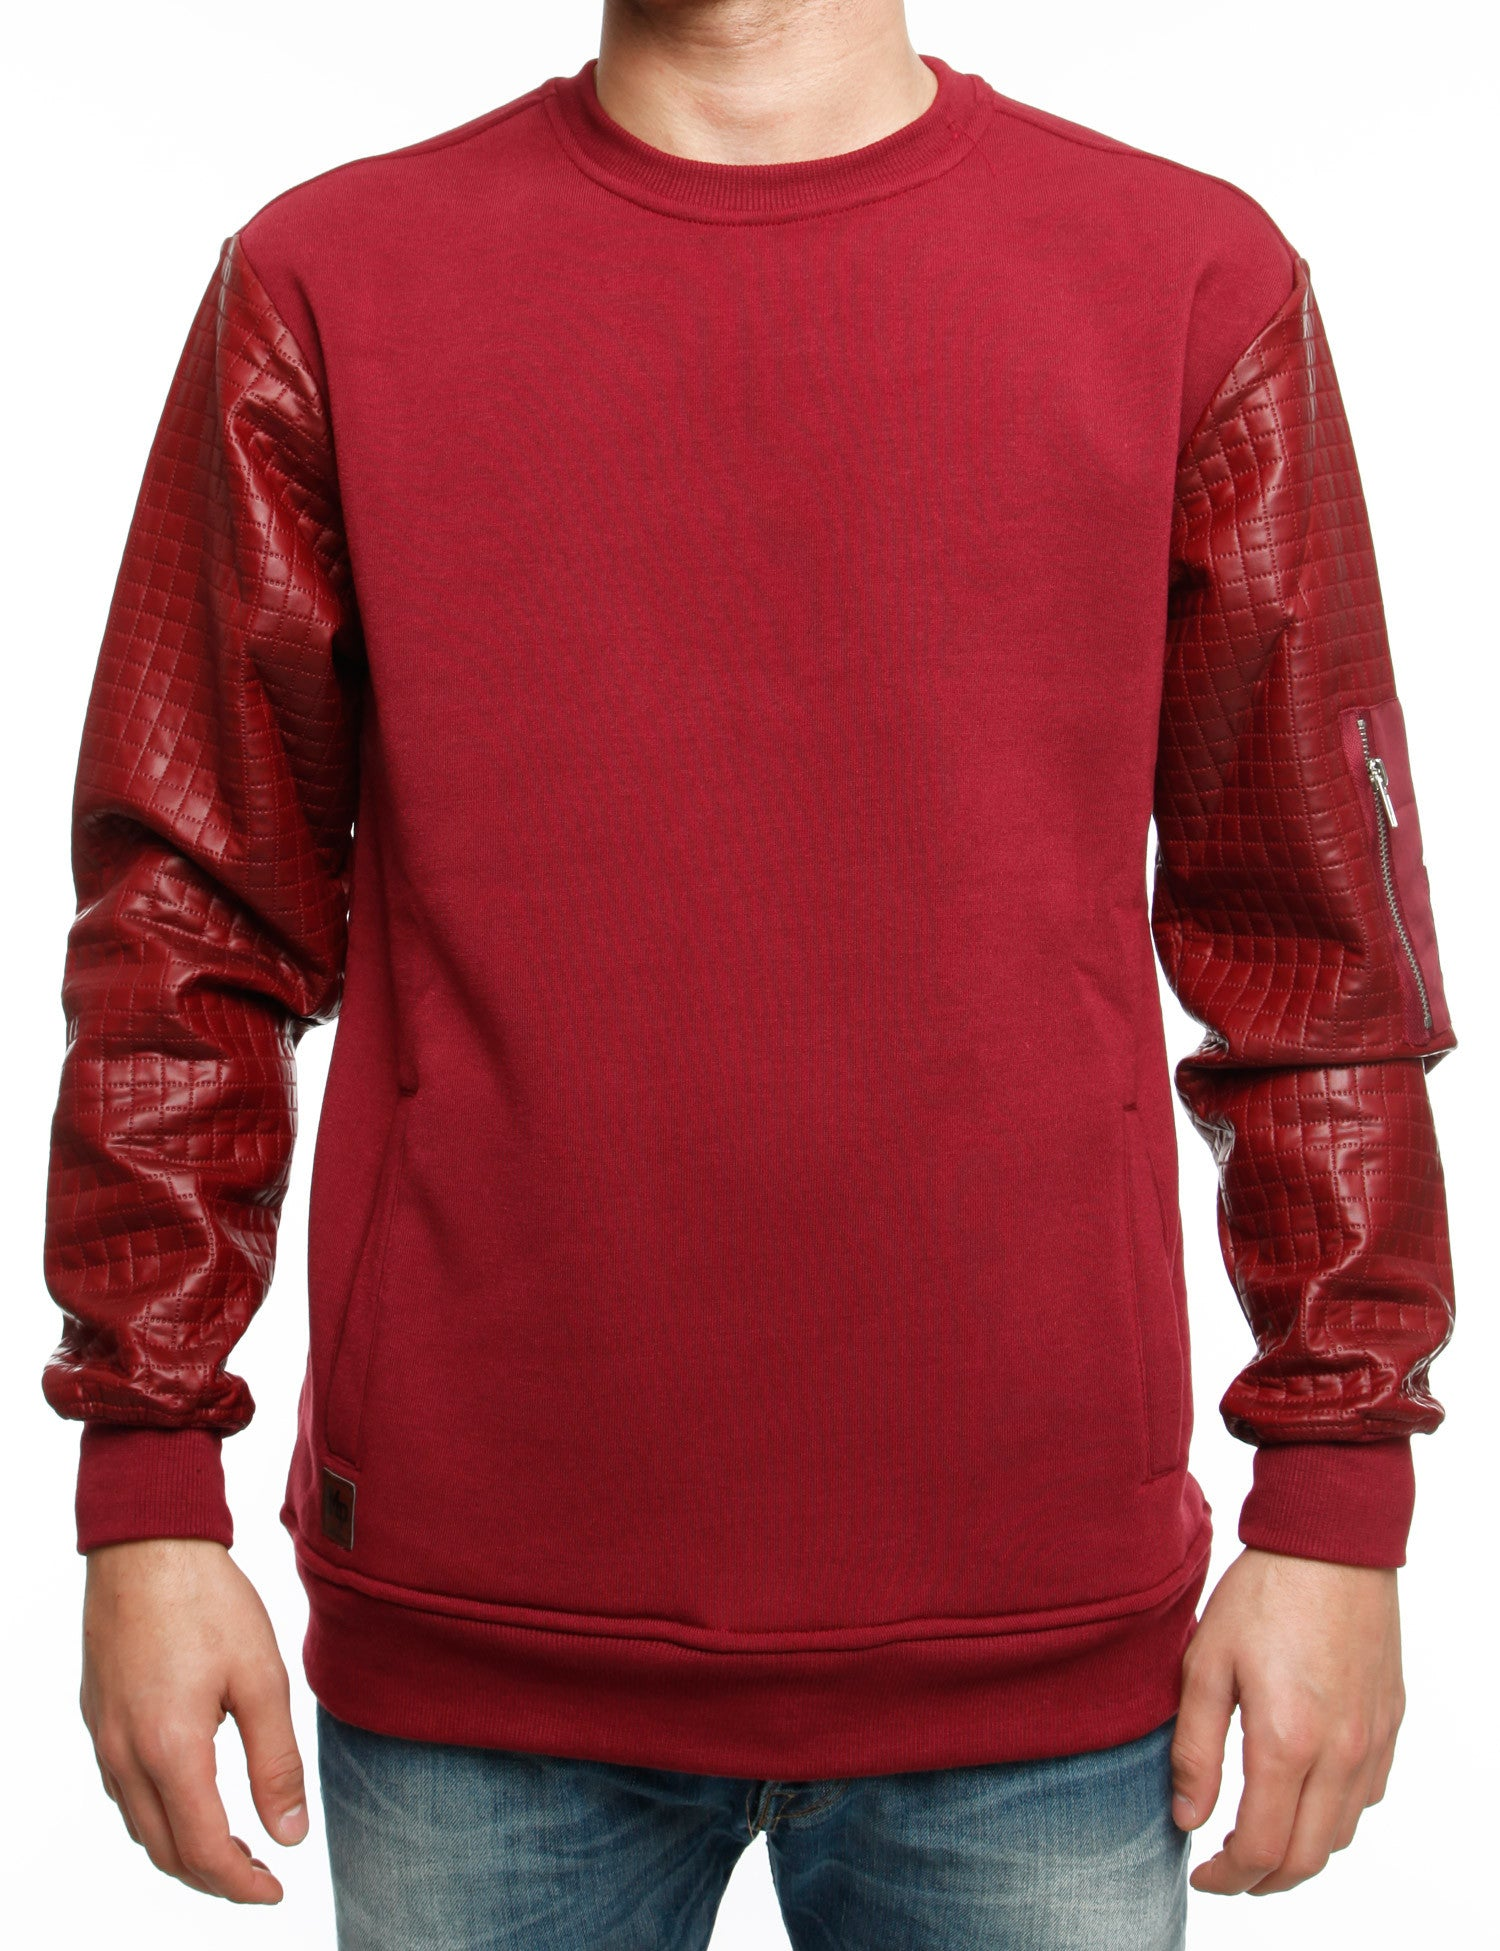 Imperious Quilted Crewneck CS566 Burgundy Red